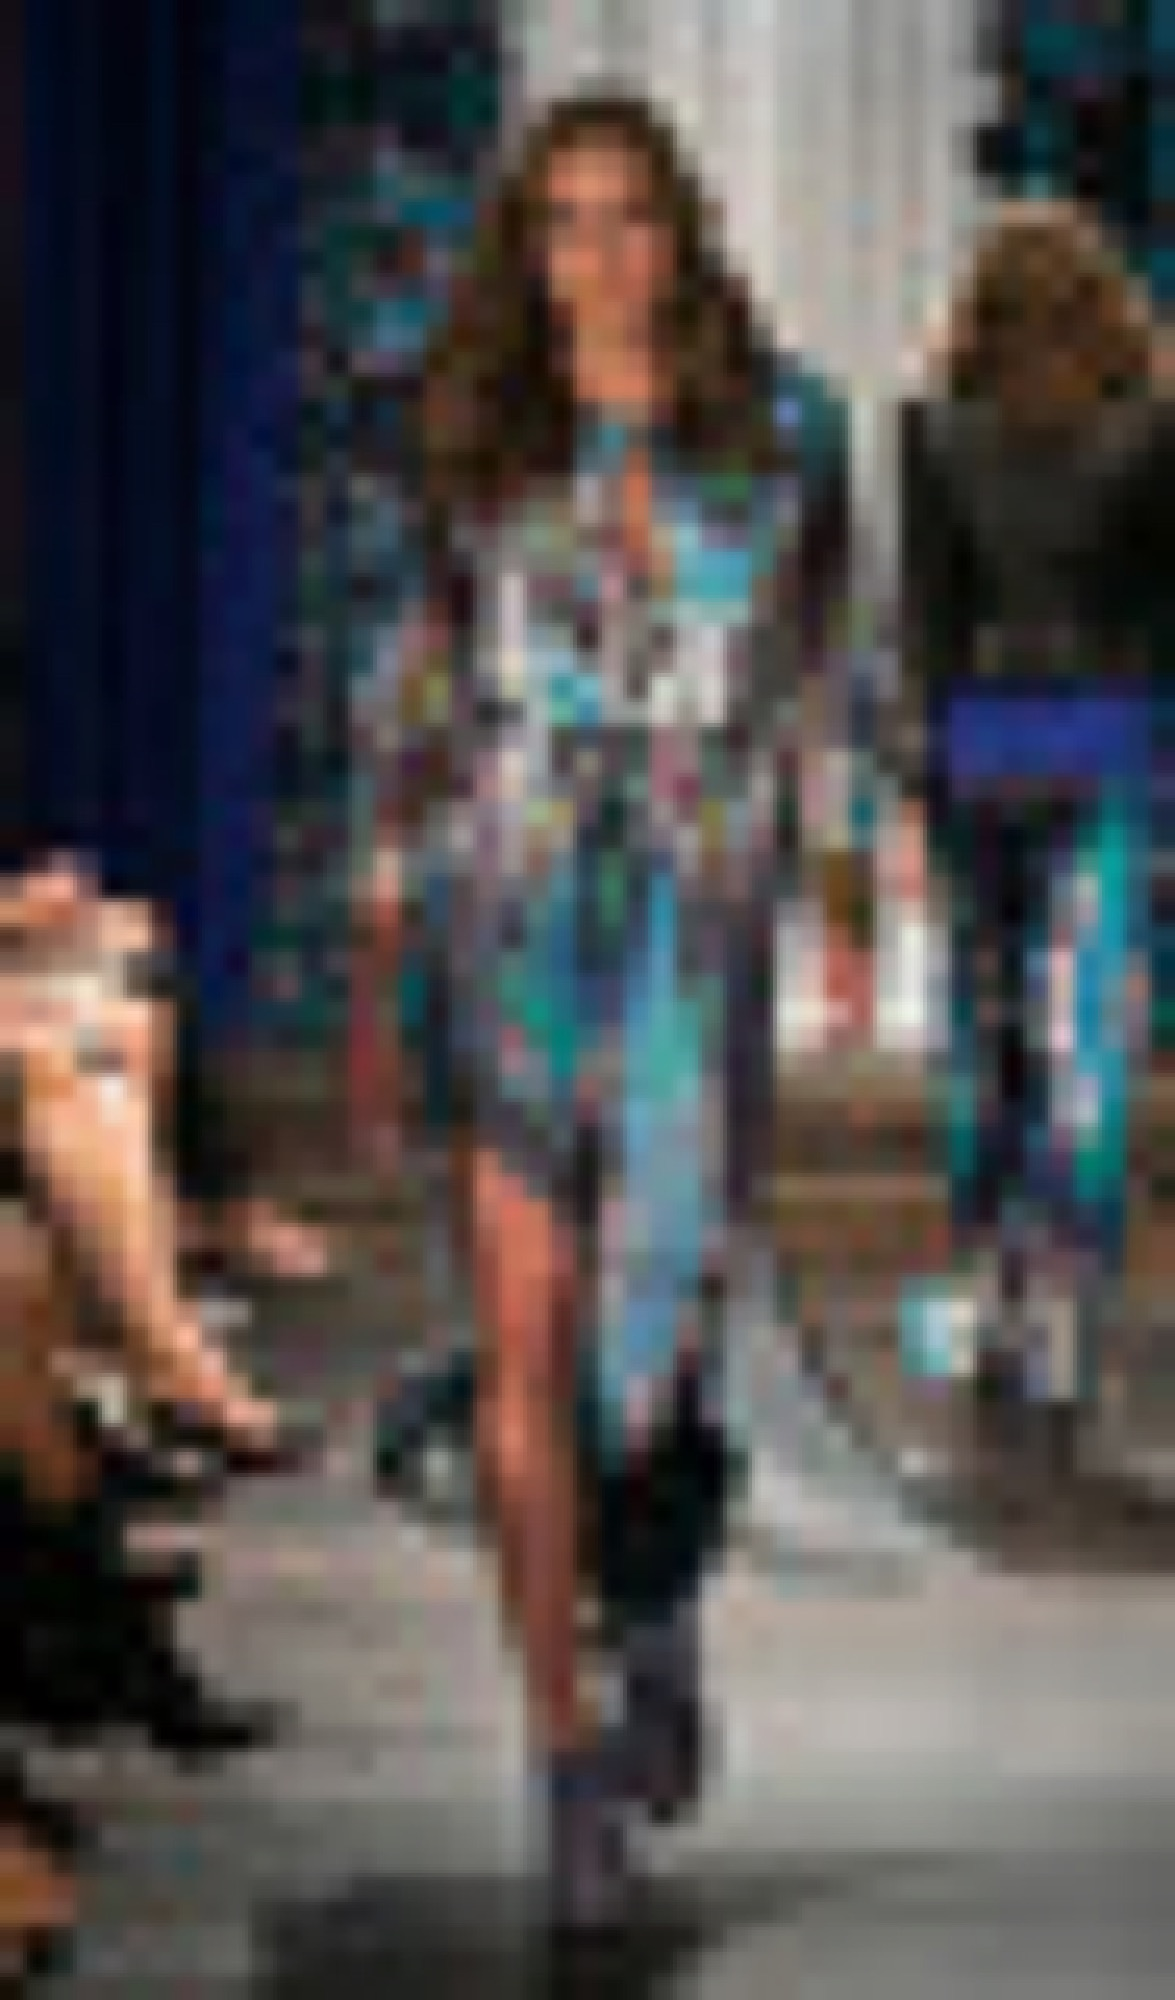 Print for BY MALINA S/S14 at Mercedes-Benz